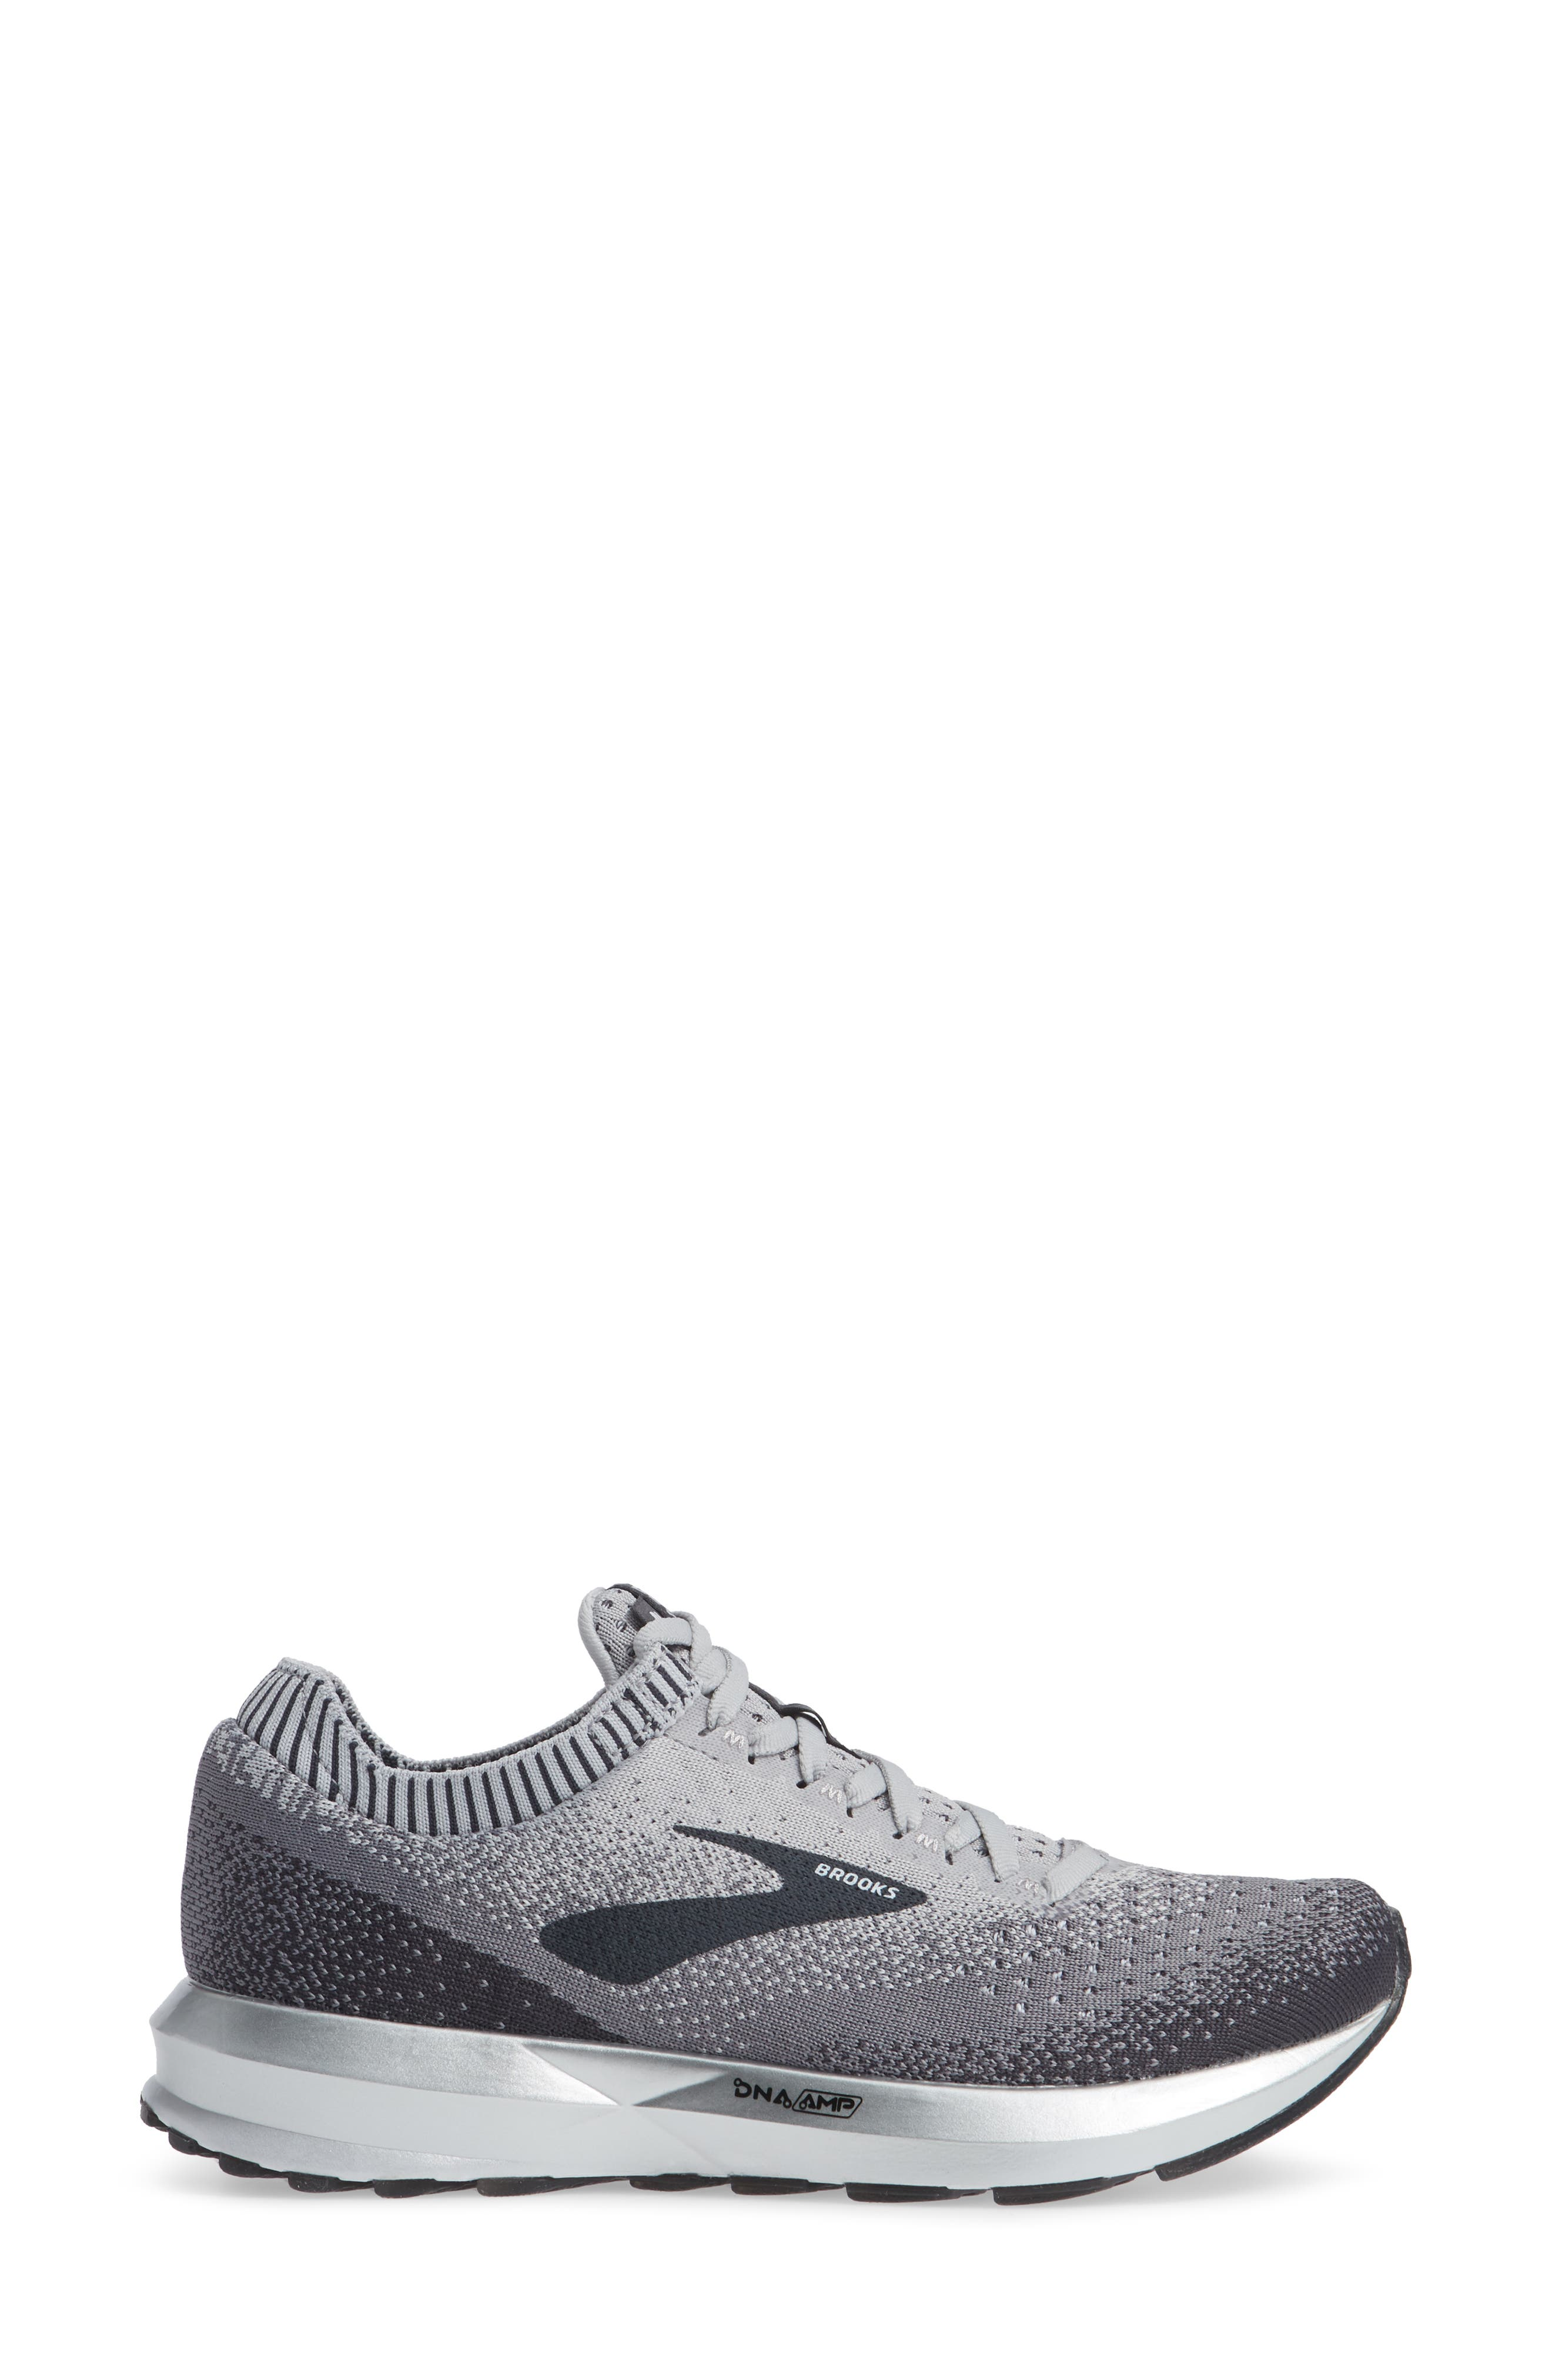 Levitate 2 Running Shoe,                             Alternate thumbnail 3, color,                             GREY/ EBONY/ WHITE